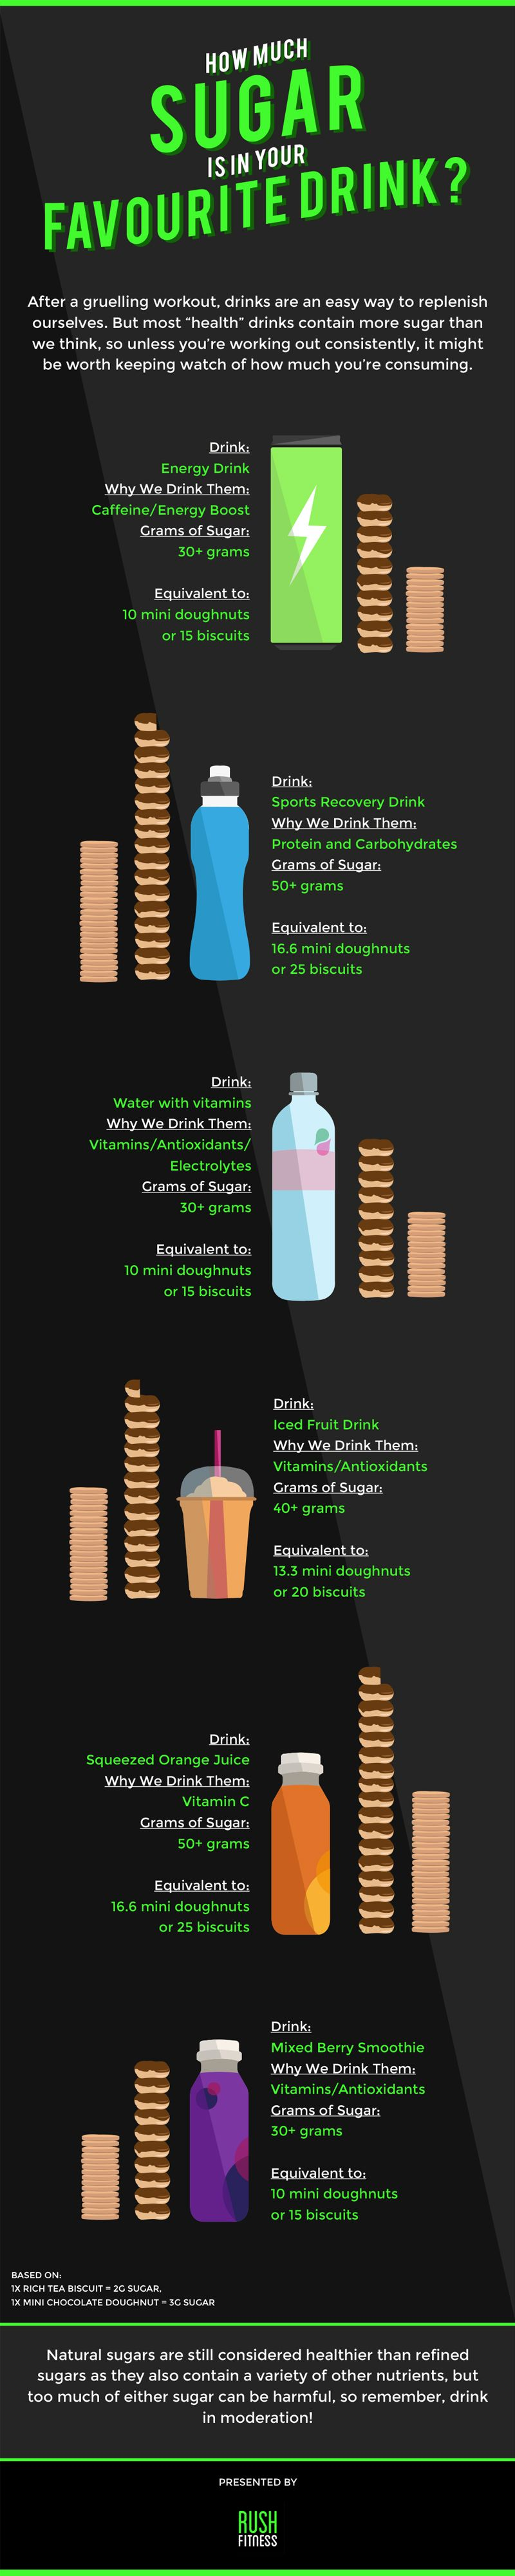 How Much Sugar is in Your Favourite Drink? #infographic